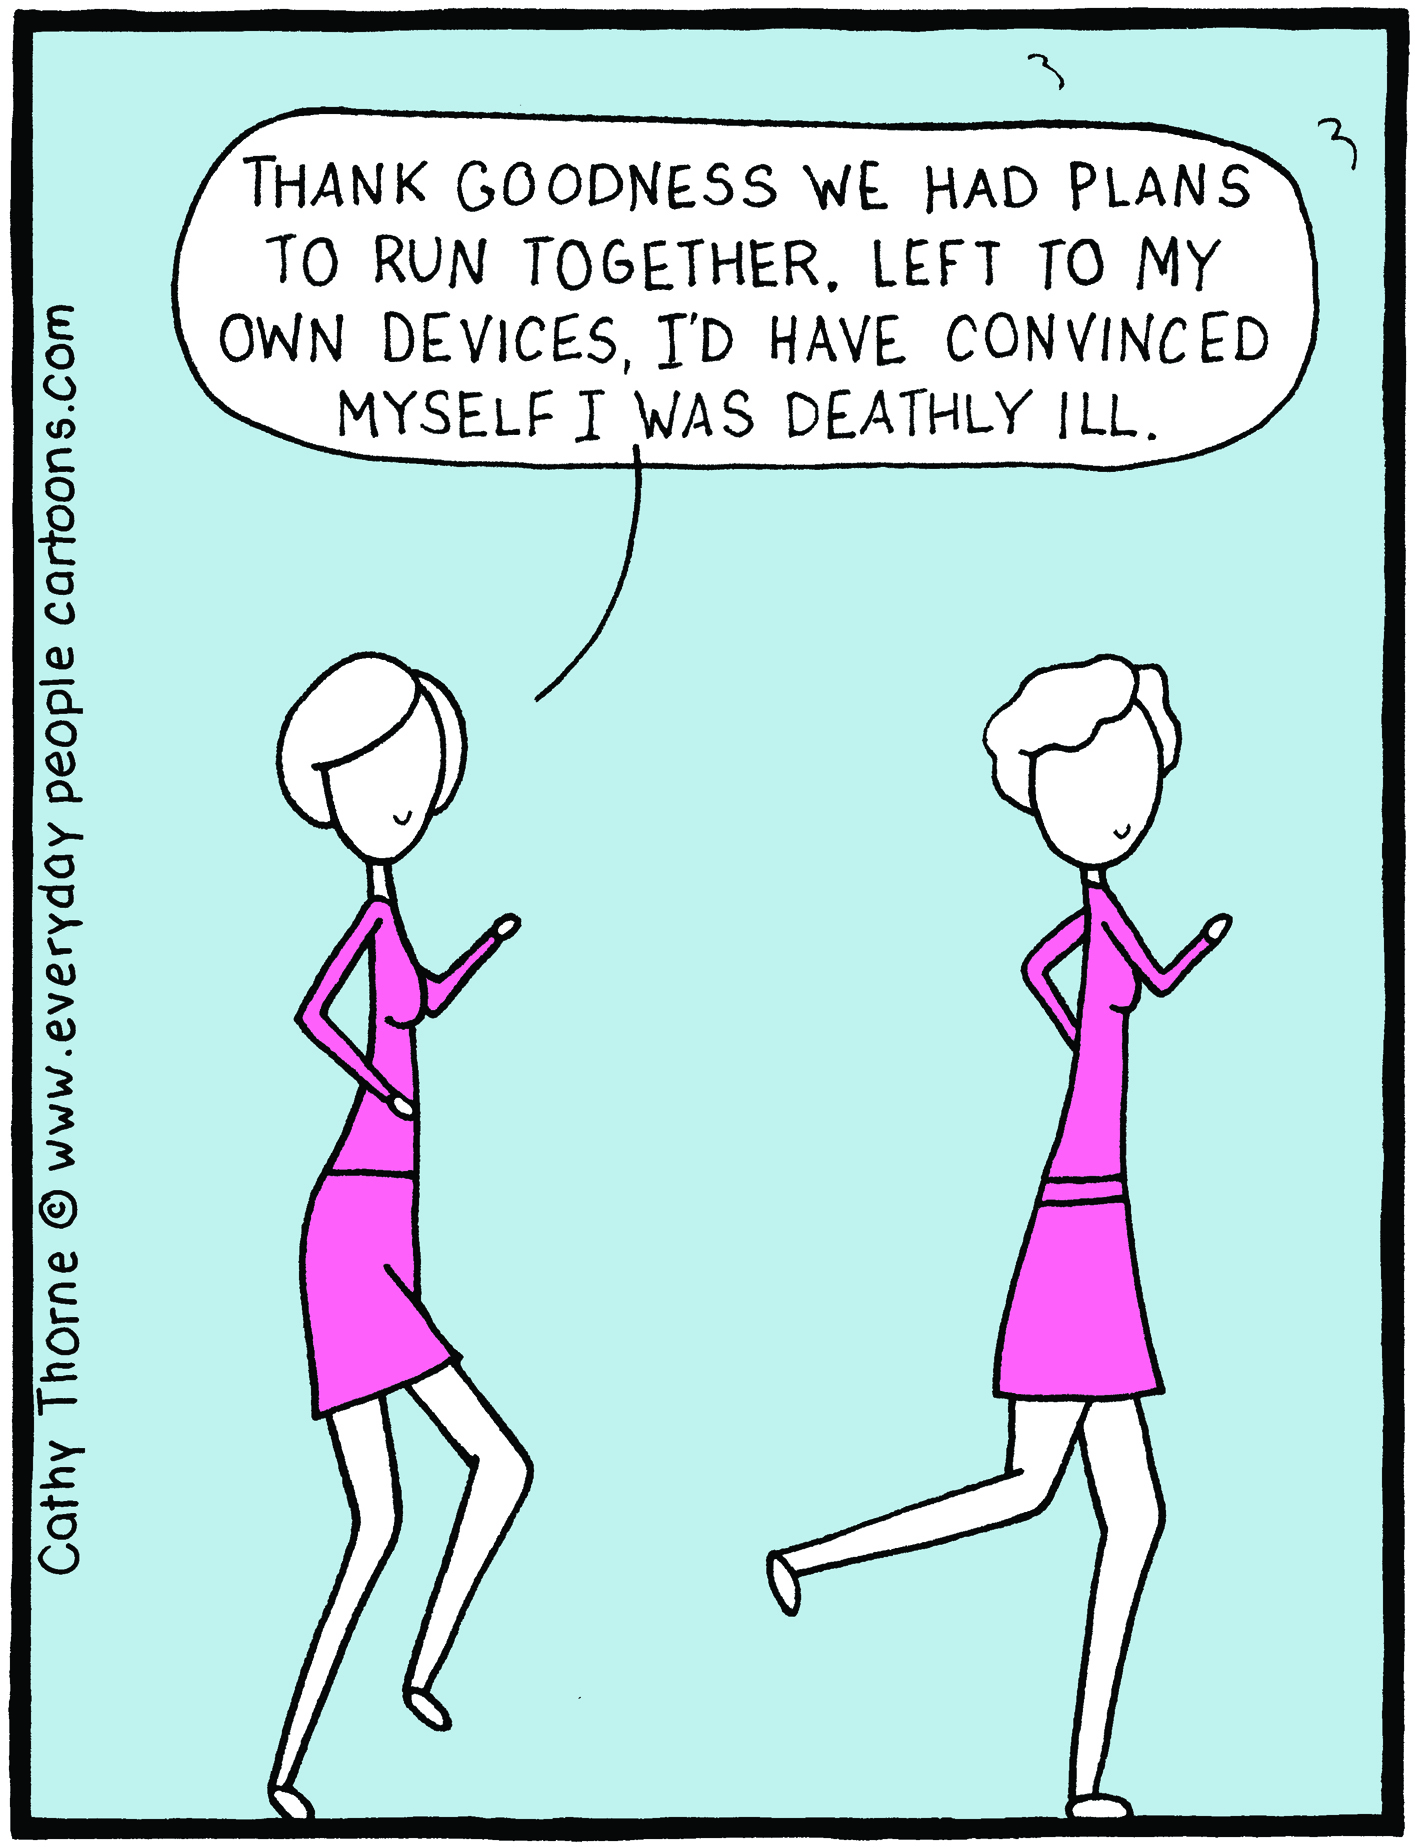 593 - Everyday People Cartoons by Cathy Thorne